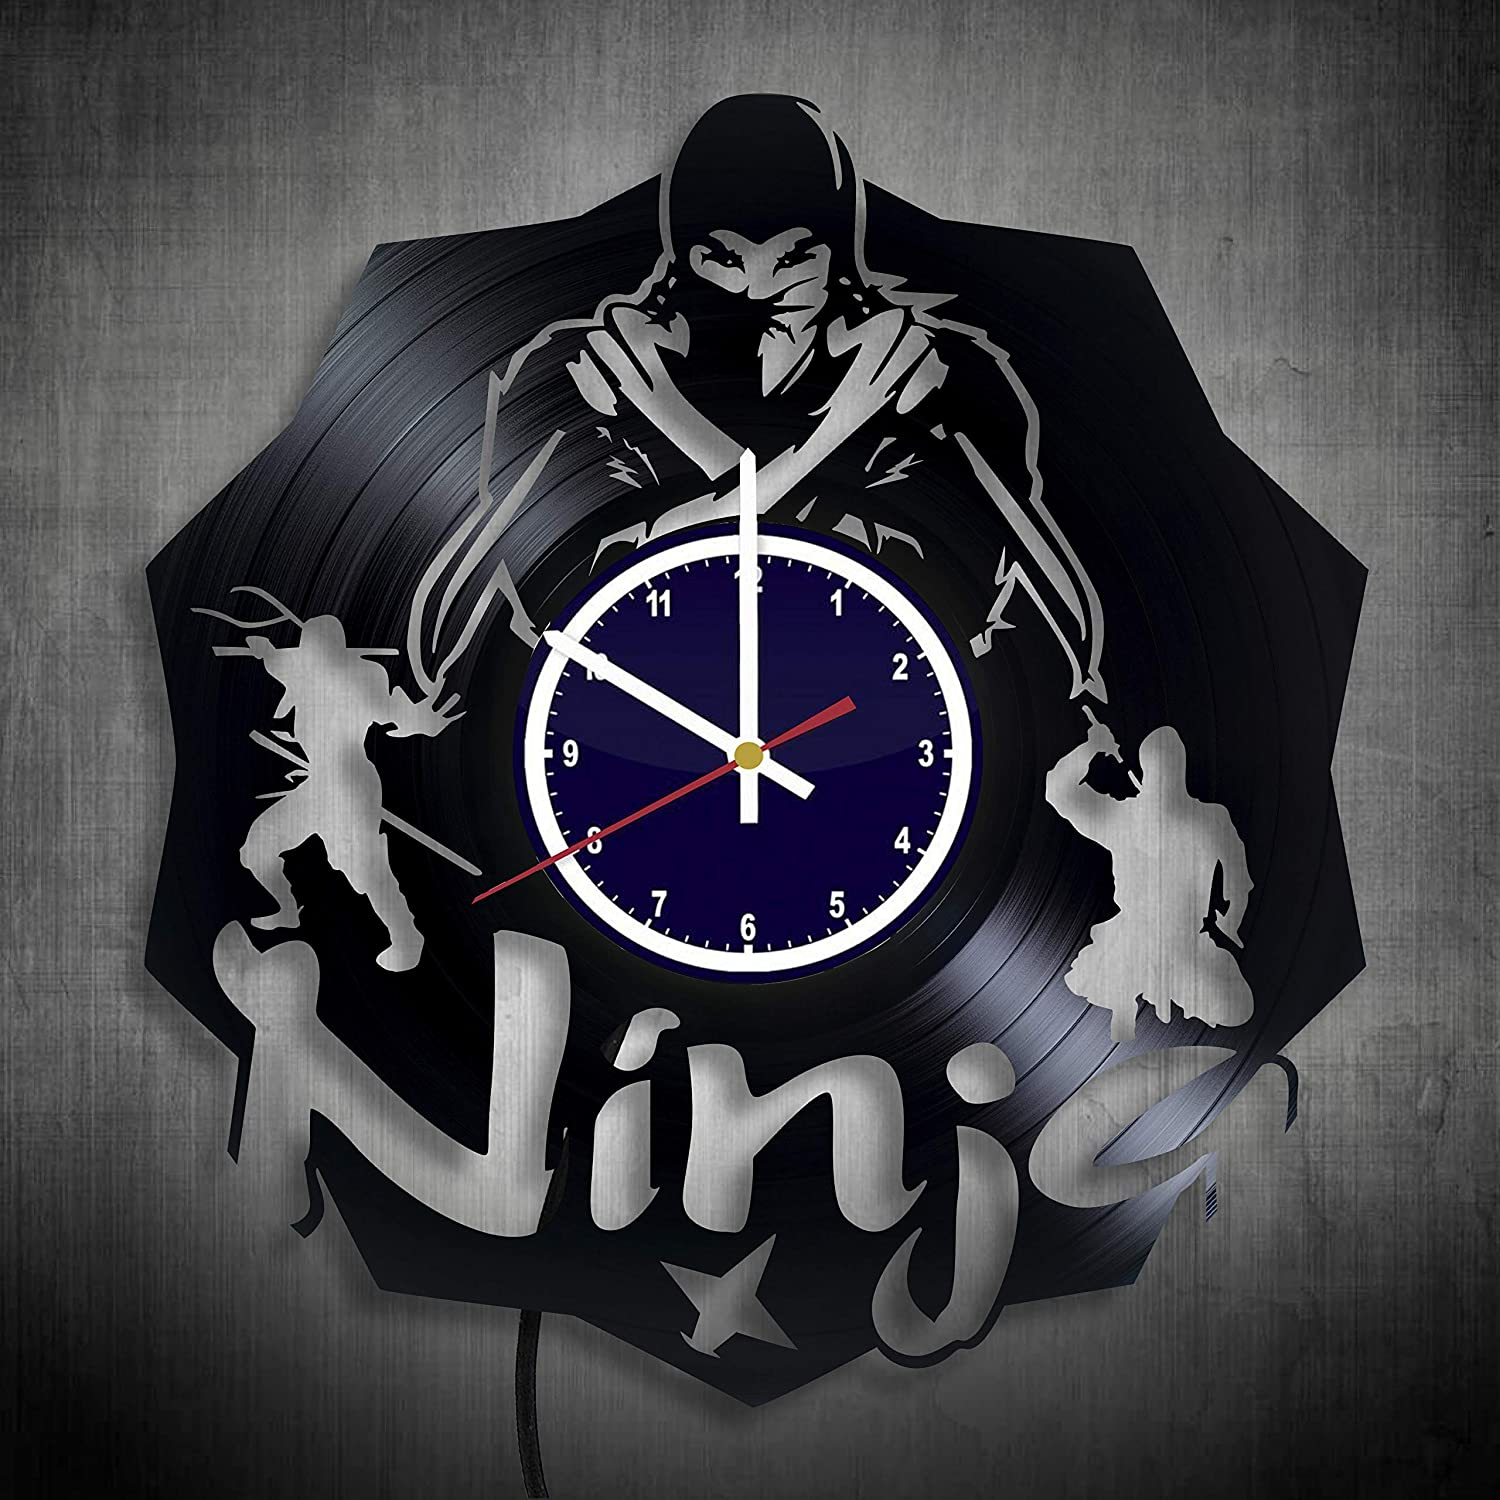 Amazon.com: Ninja Gifts for Men Clock Night light - ninja ...